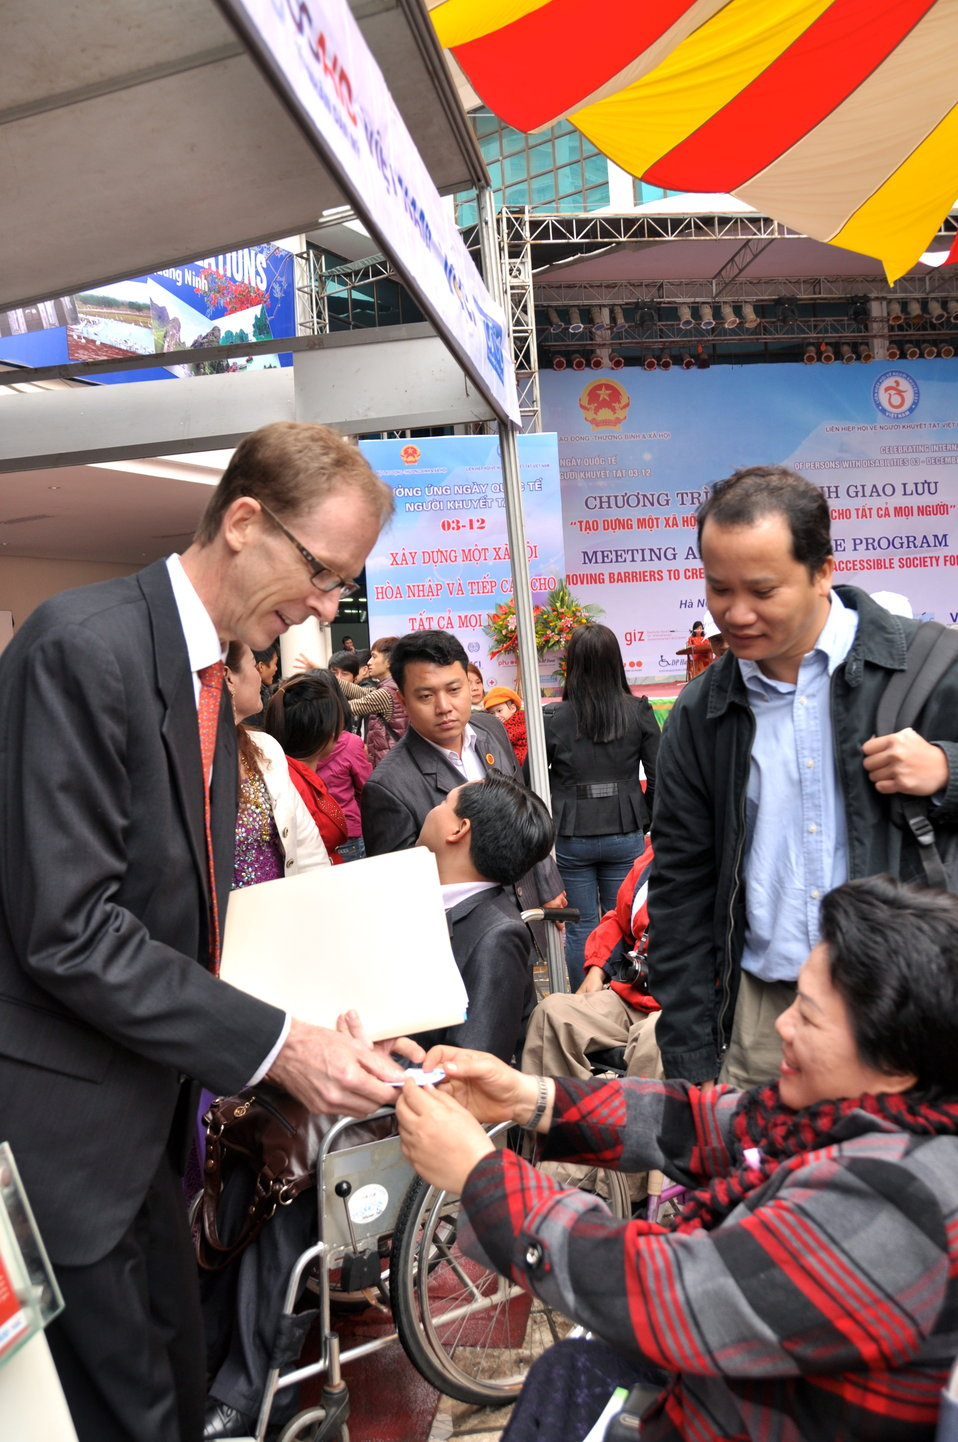 USAID Mission Director Joakim Parker joins celebration of International Day of Persons with Disabilities in Hanoi, Vietnam